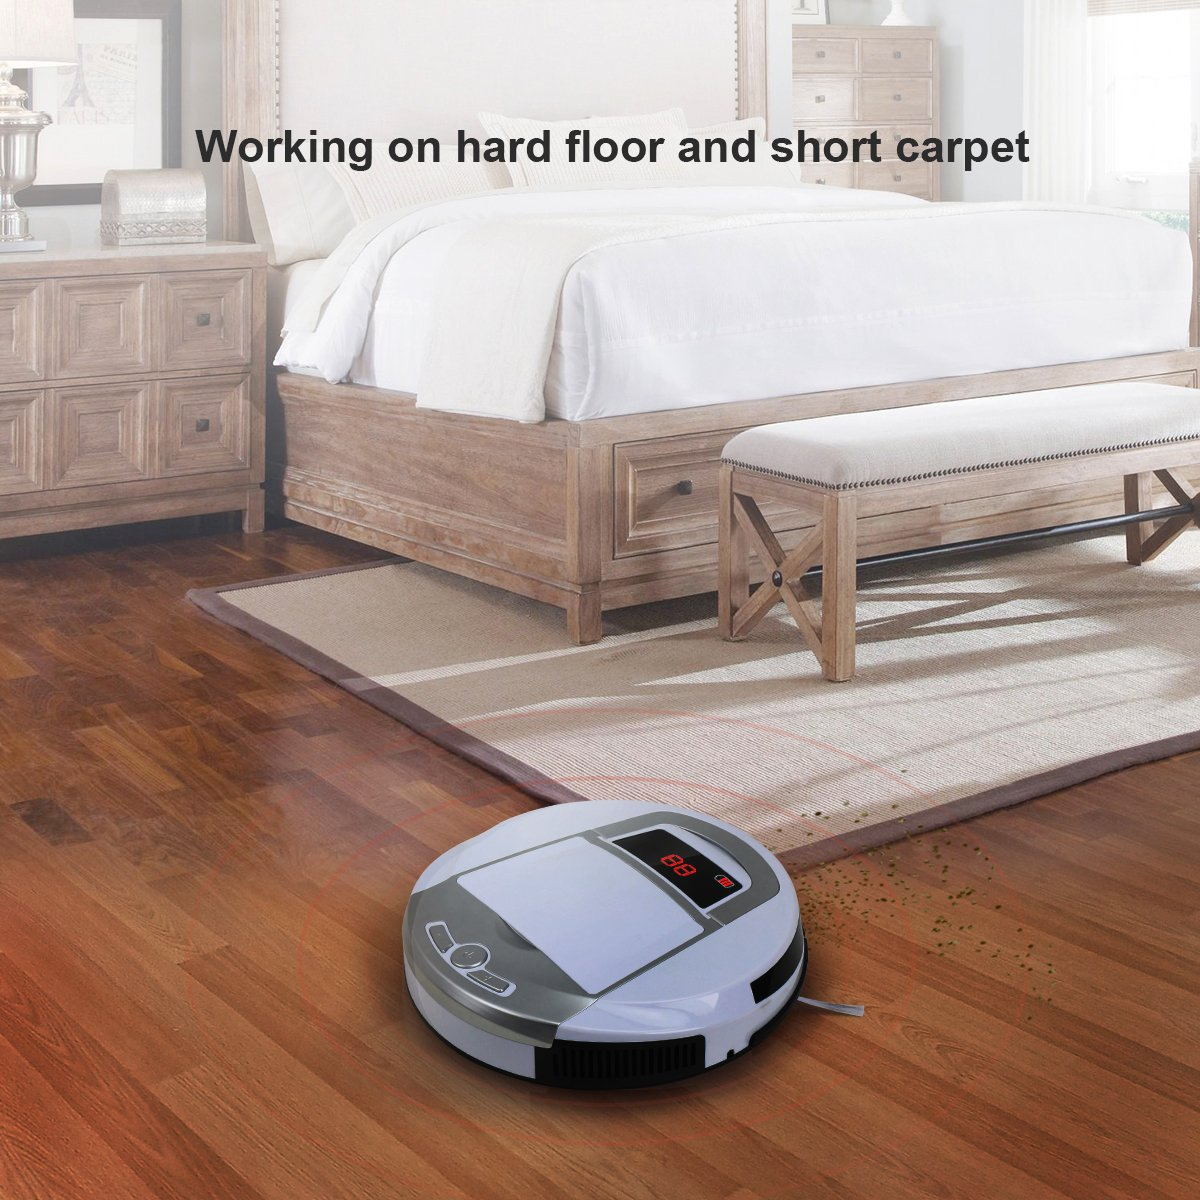 Robotic Vacuum Cleaner, Rechargeable Robotic Vacuum with Strong Suction and HEPA Double Filter, Anti-Cliff and Anti-Bump Sensor Robot for Pet Hair, Fur, Allergens, Thin Carpet, Hardwood and Tile Floor by FORTUNE DRAGON (Image #2)